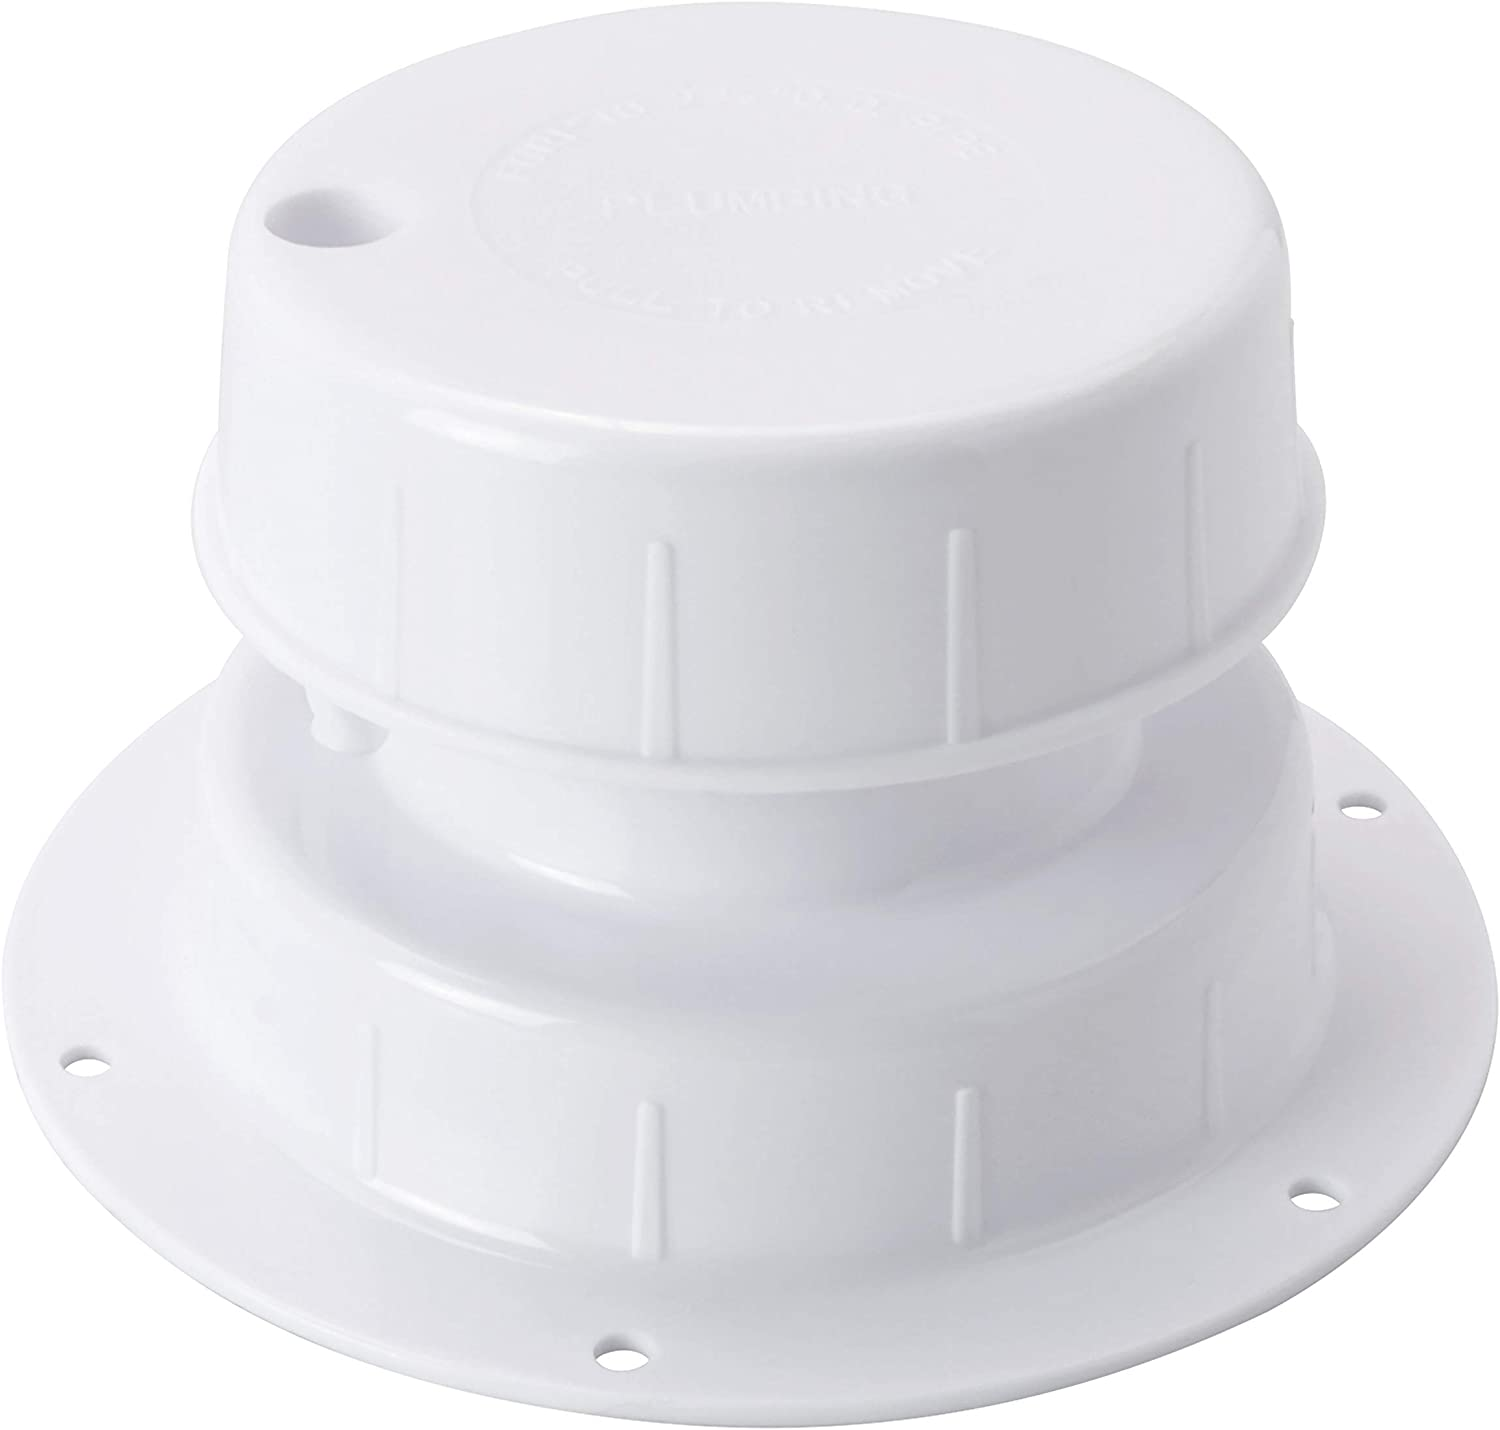 Leisure Recommended Coachworks RV 5 ☆ very popular Plumbing Vent Plastic Sewer Cap